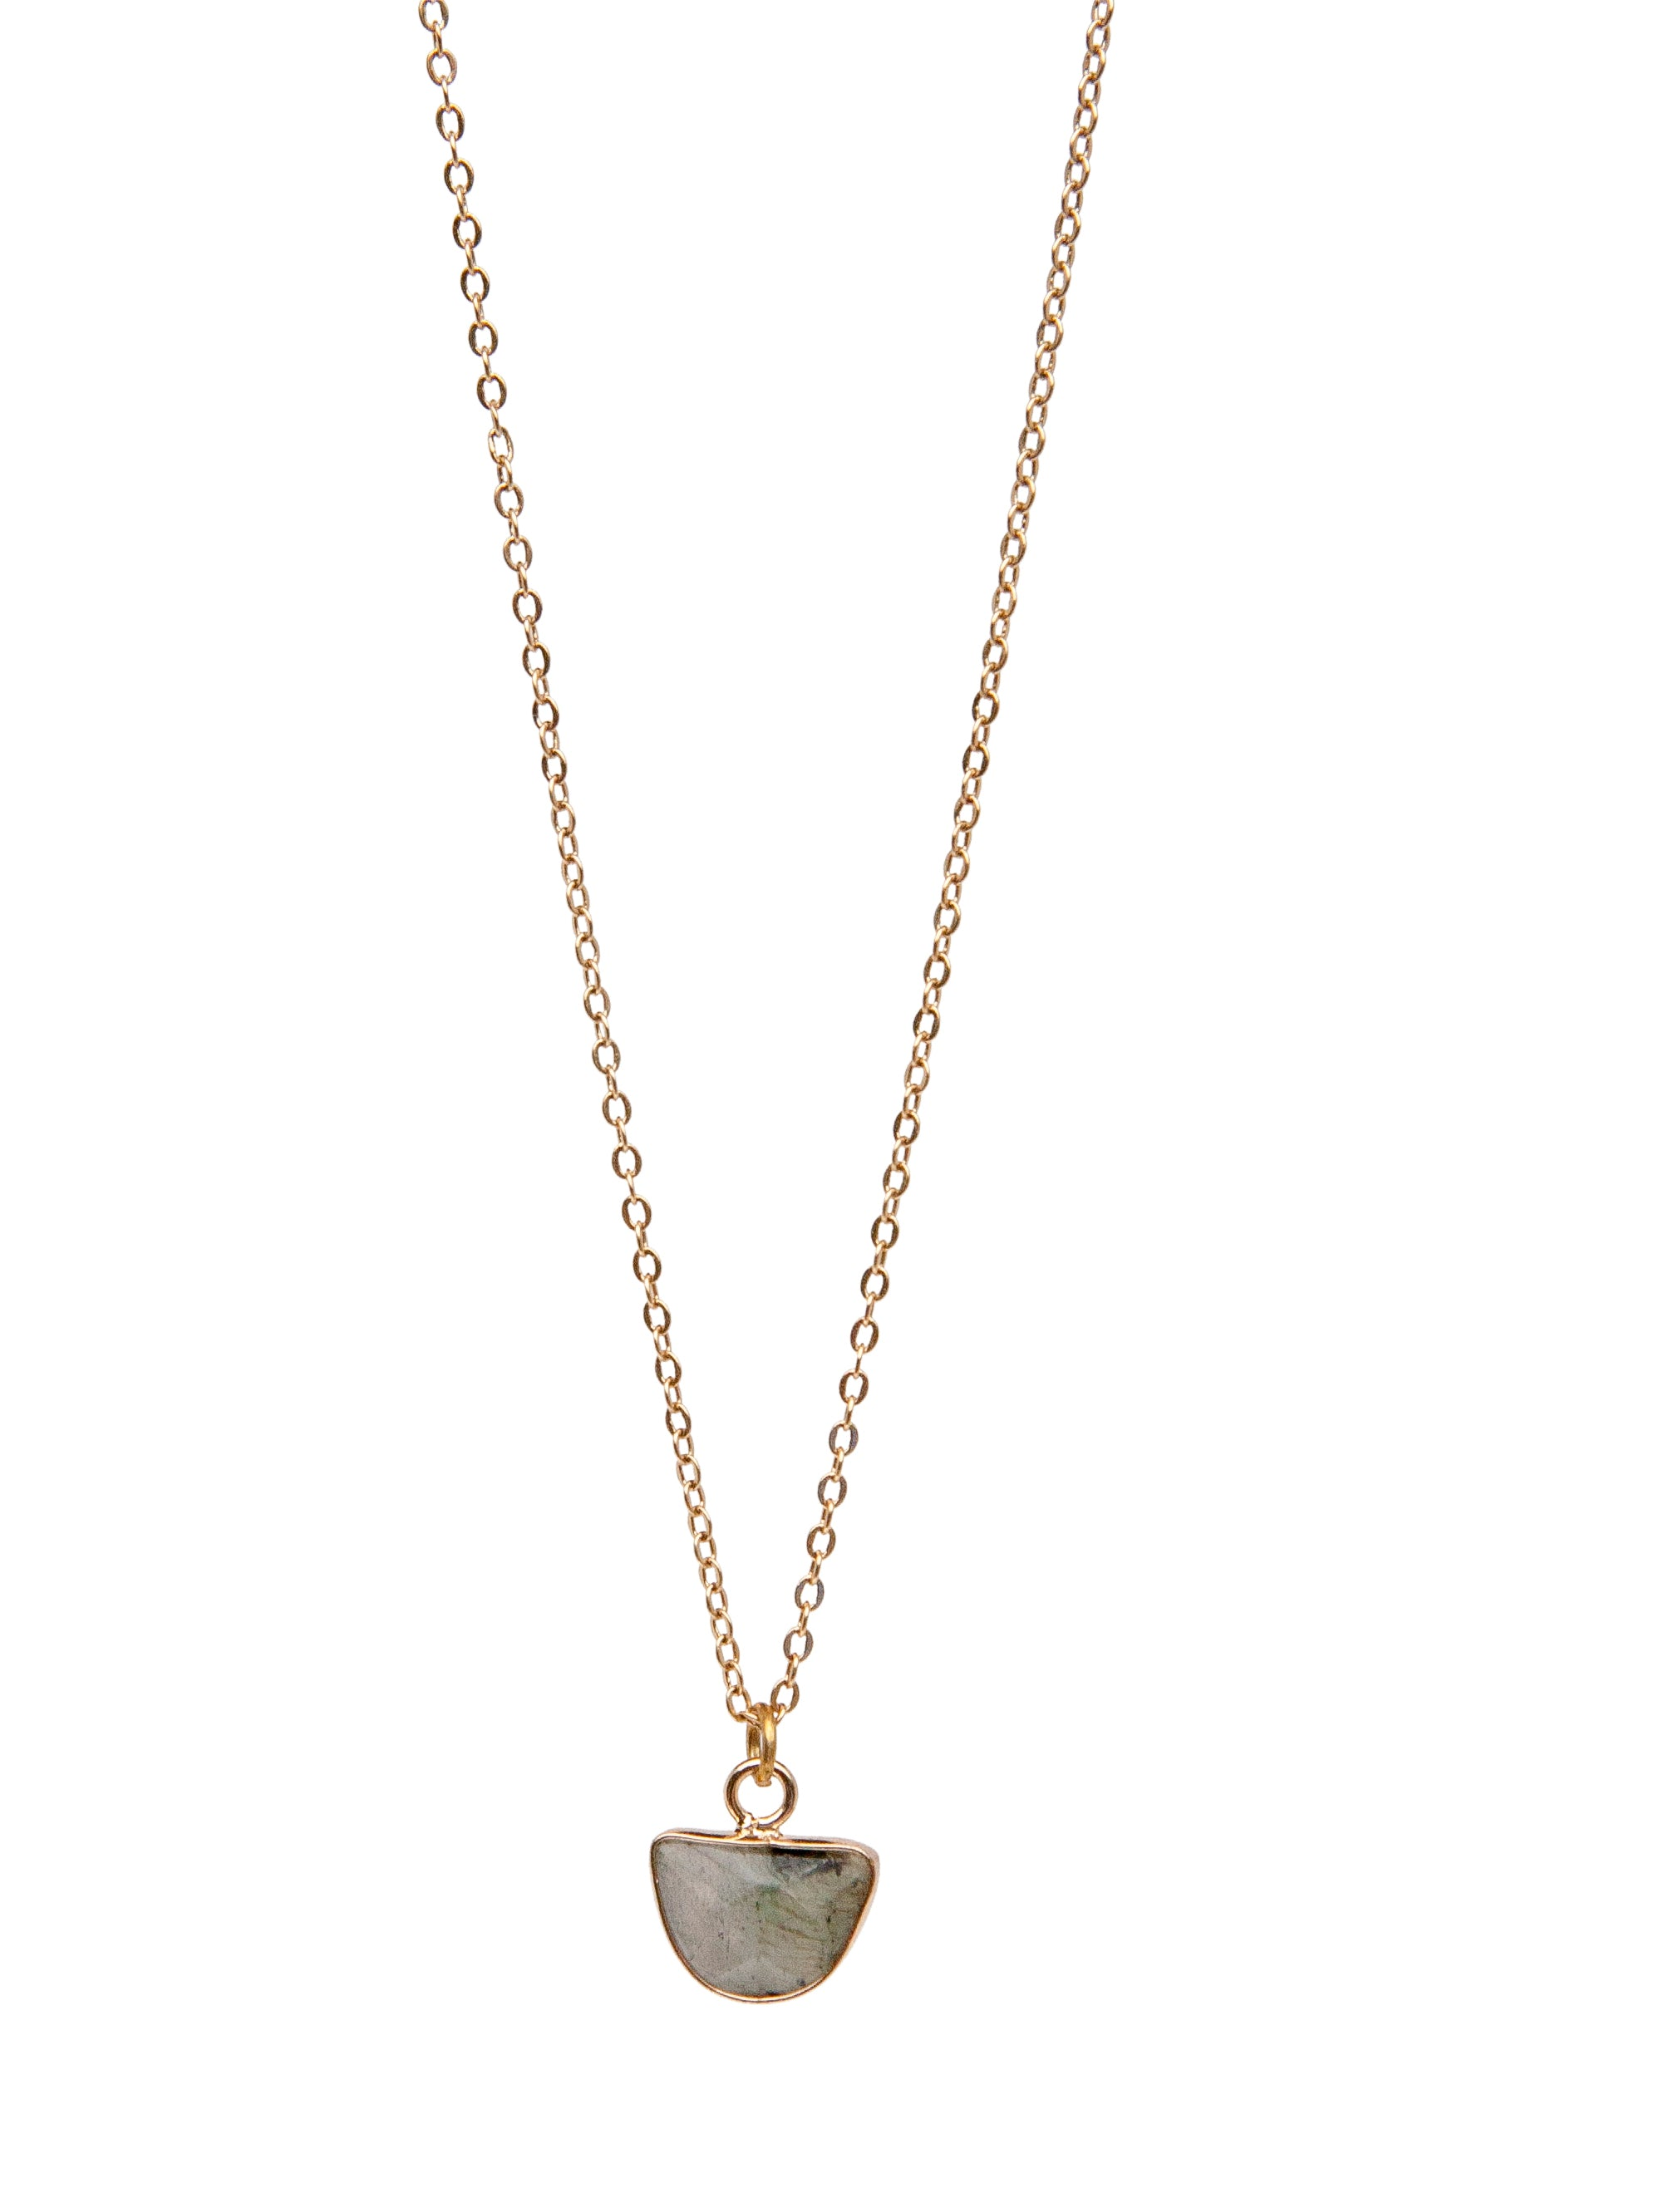 24K Champagne-Gold plated chain, natural stone hanger (available with different stones)